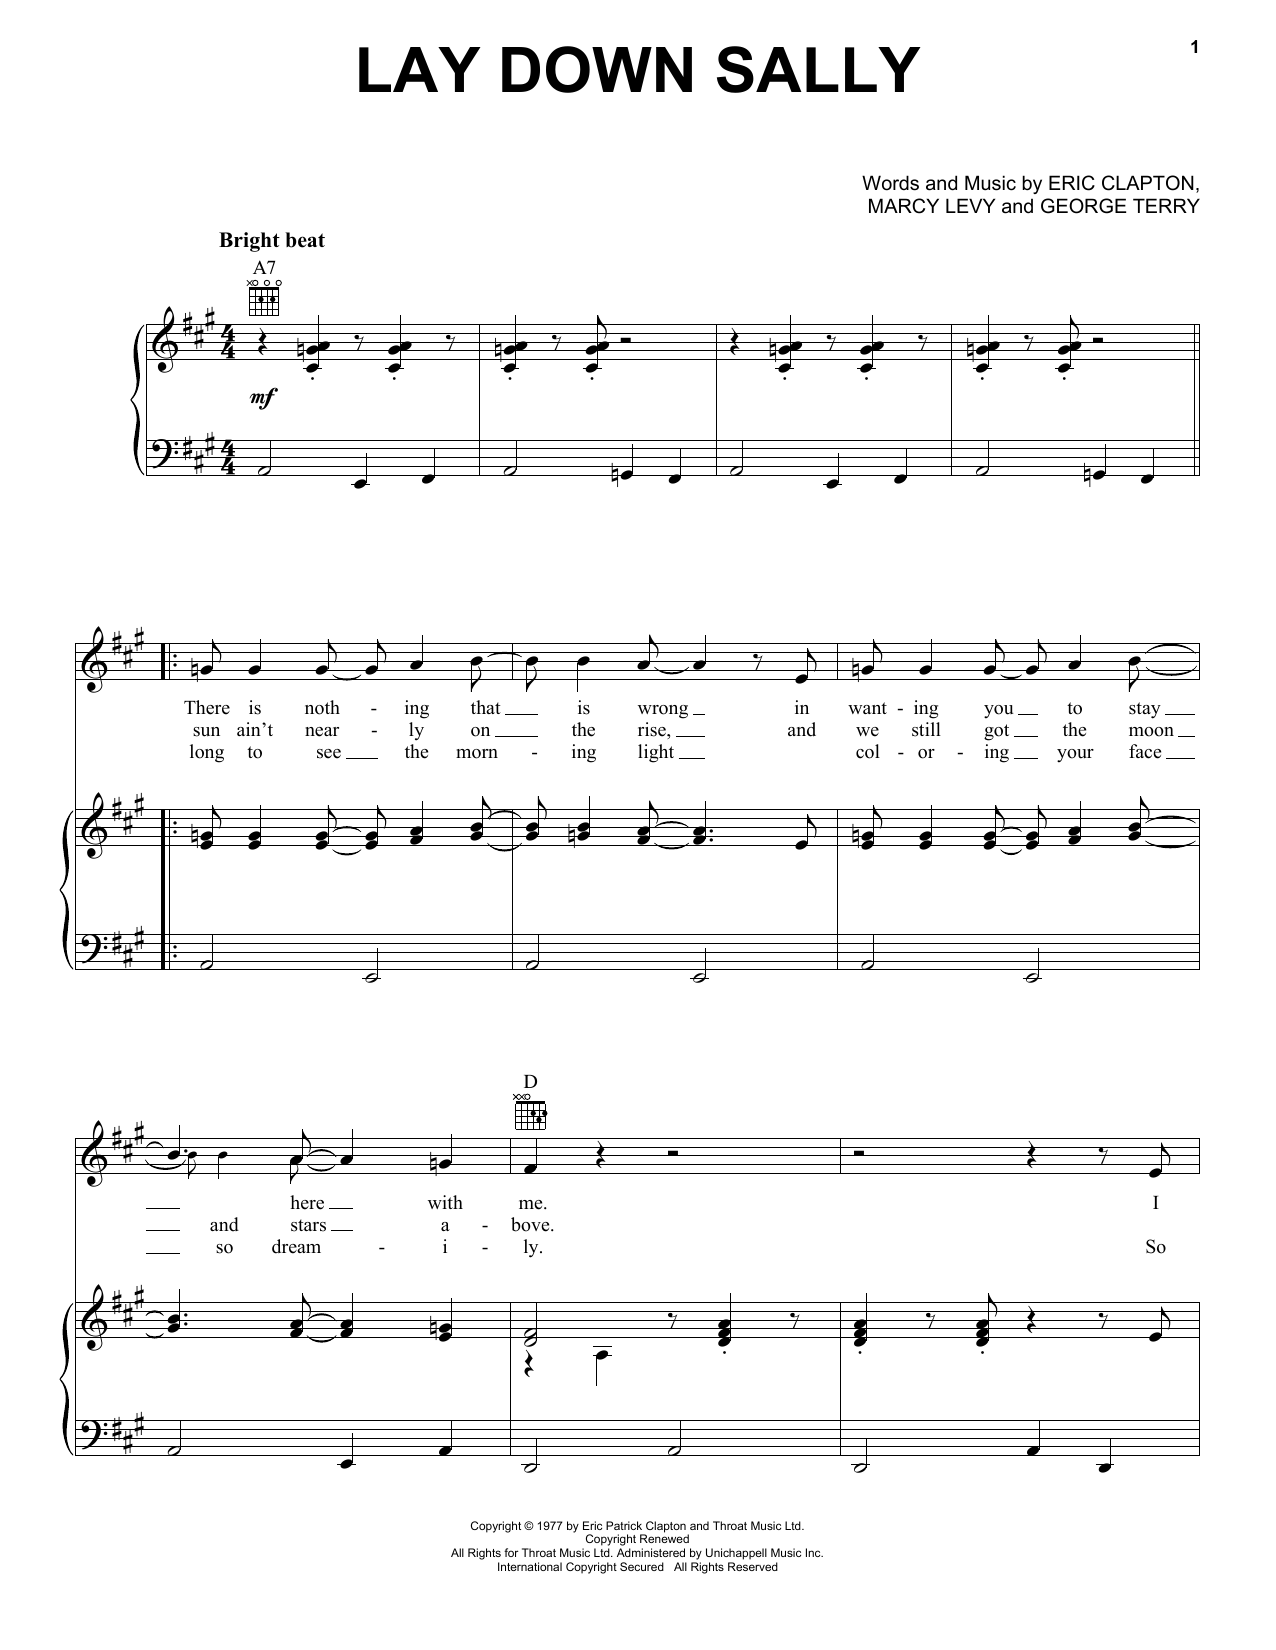 Eric Clapton Lay Down Sally sheet music notes and chords